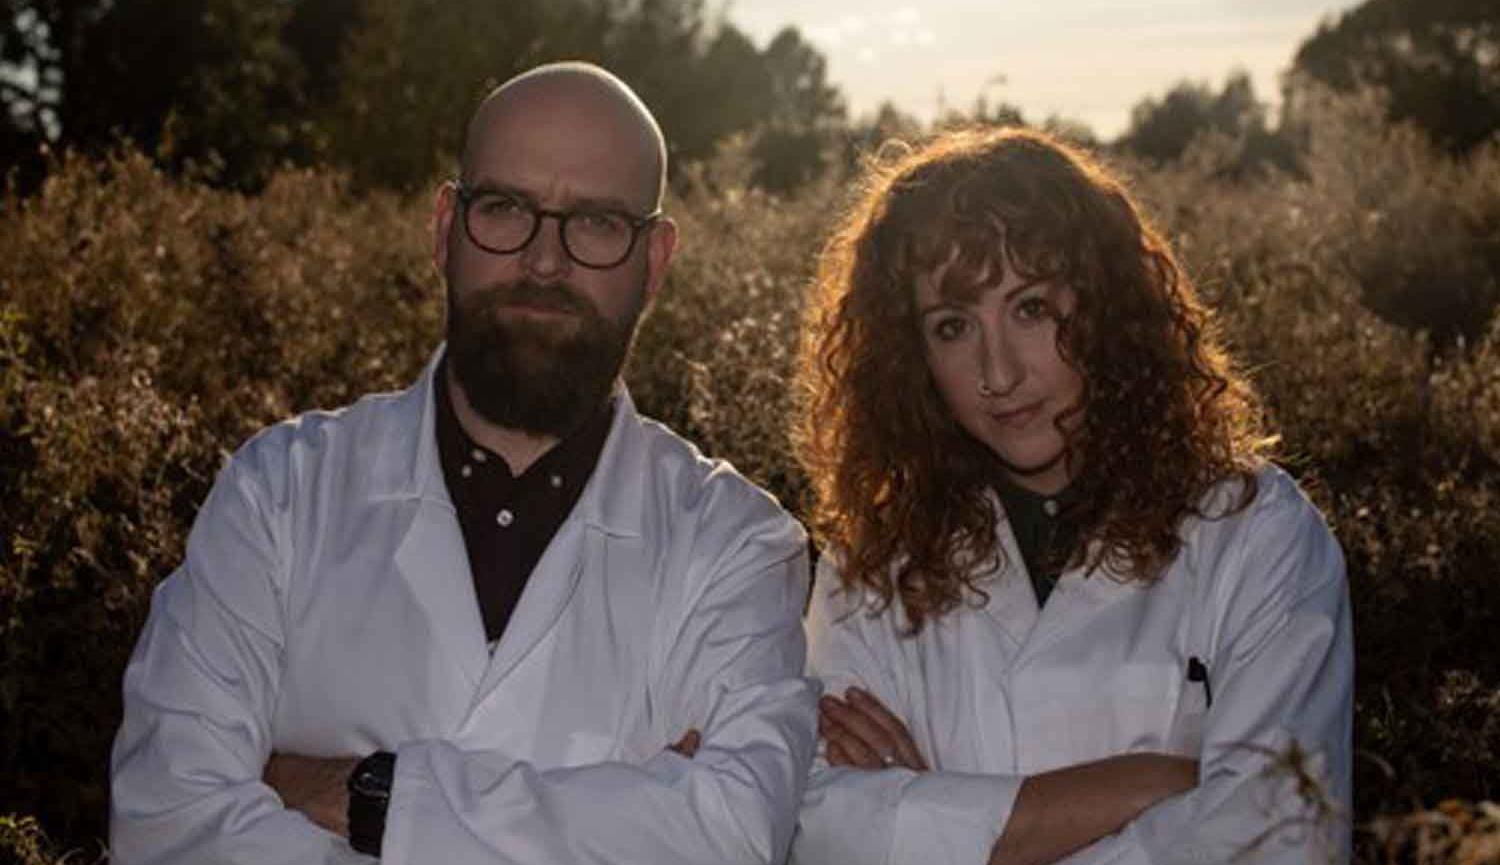 Findlay Napier and Megan Henwood standing side by side wearing white lab coats